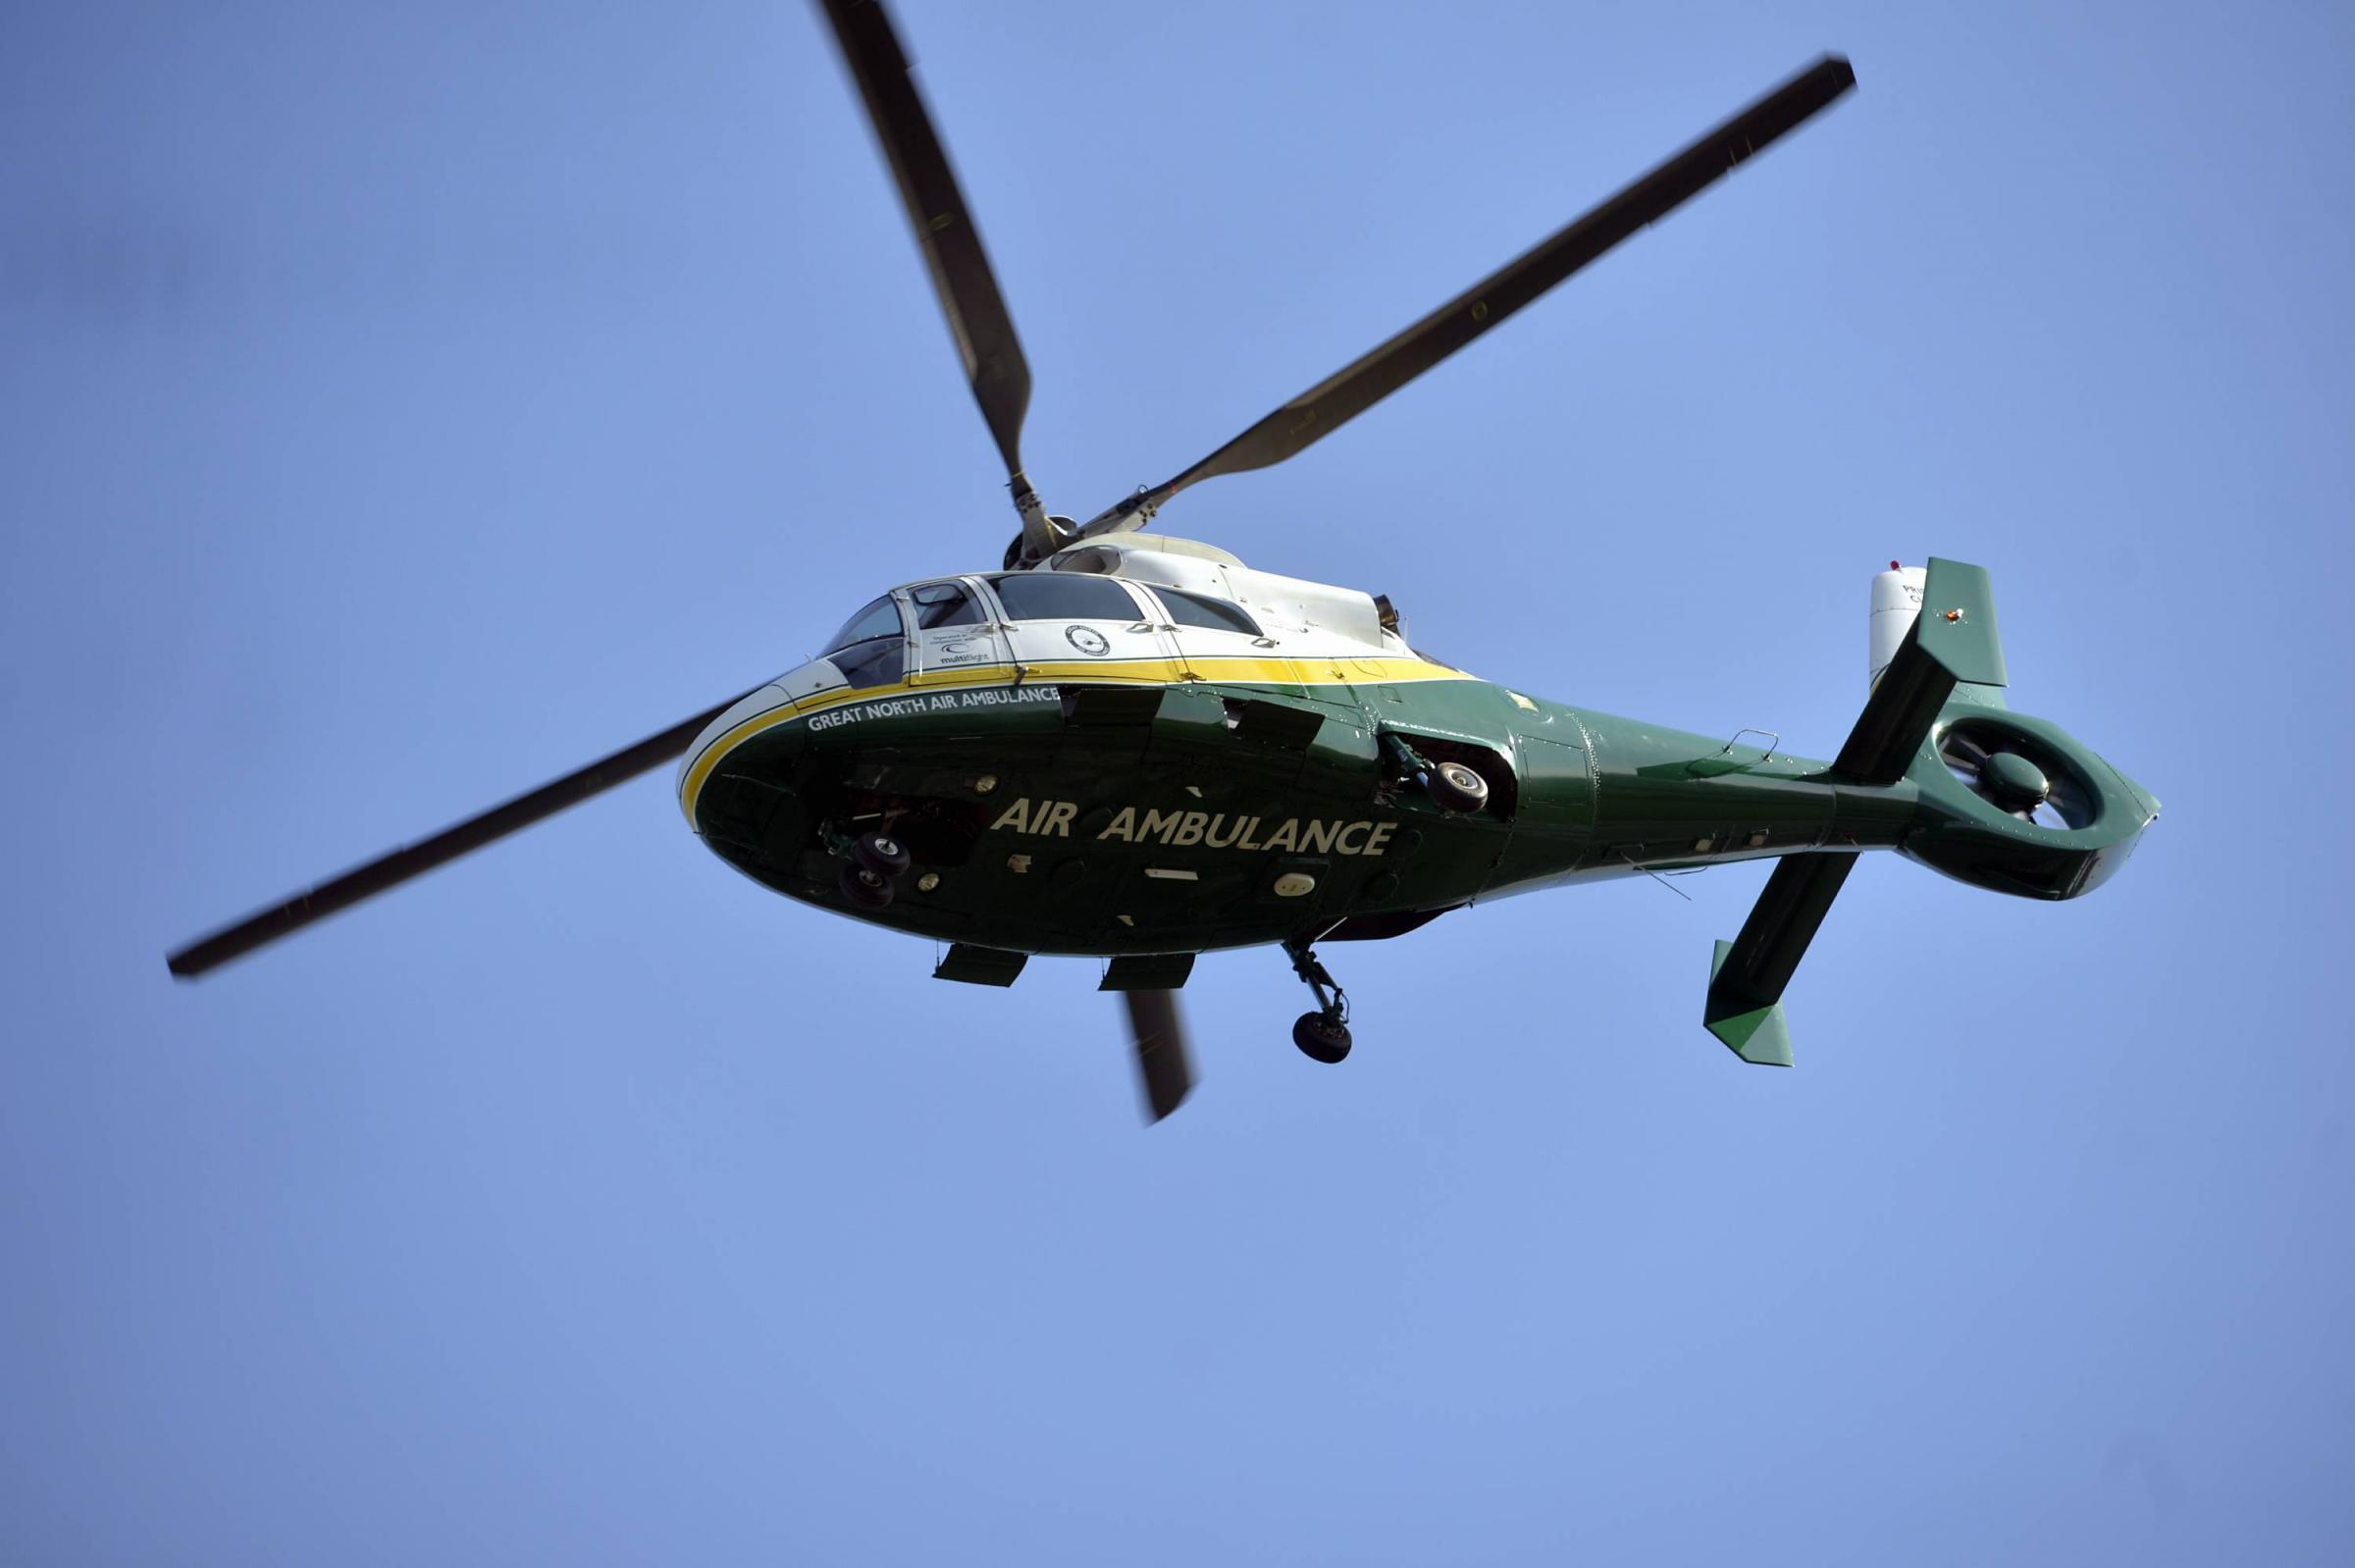 West Cumbrian motorcyclist was airlifted to hospital with serious injuries following A66 crash